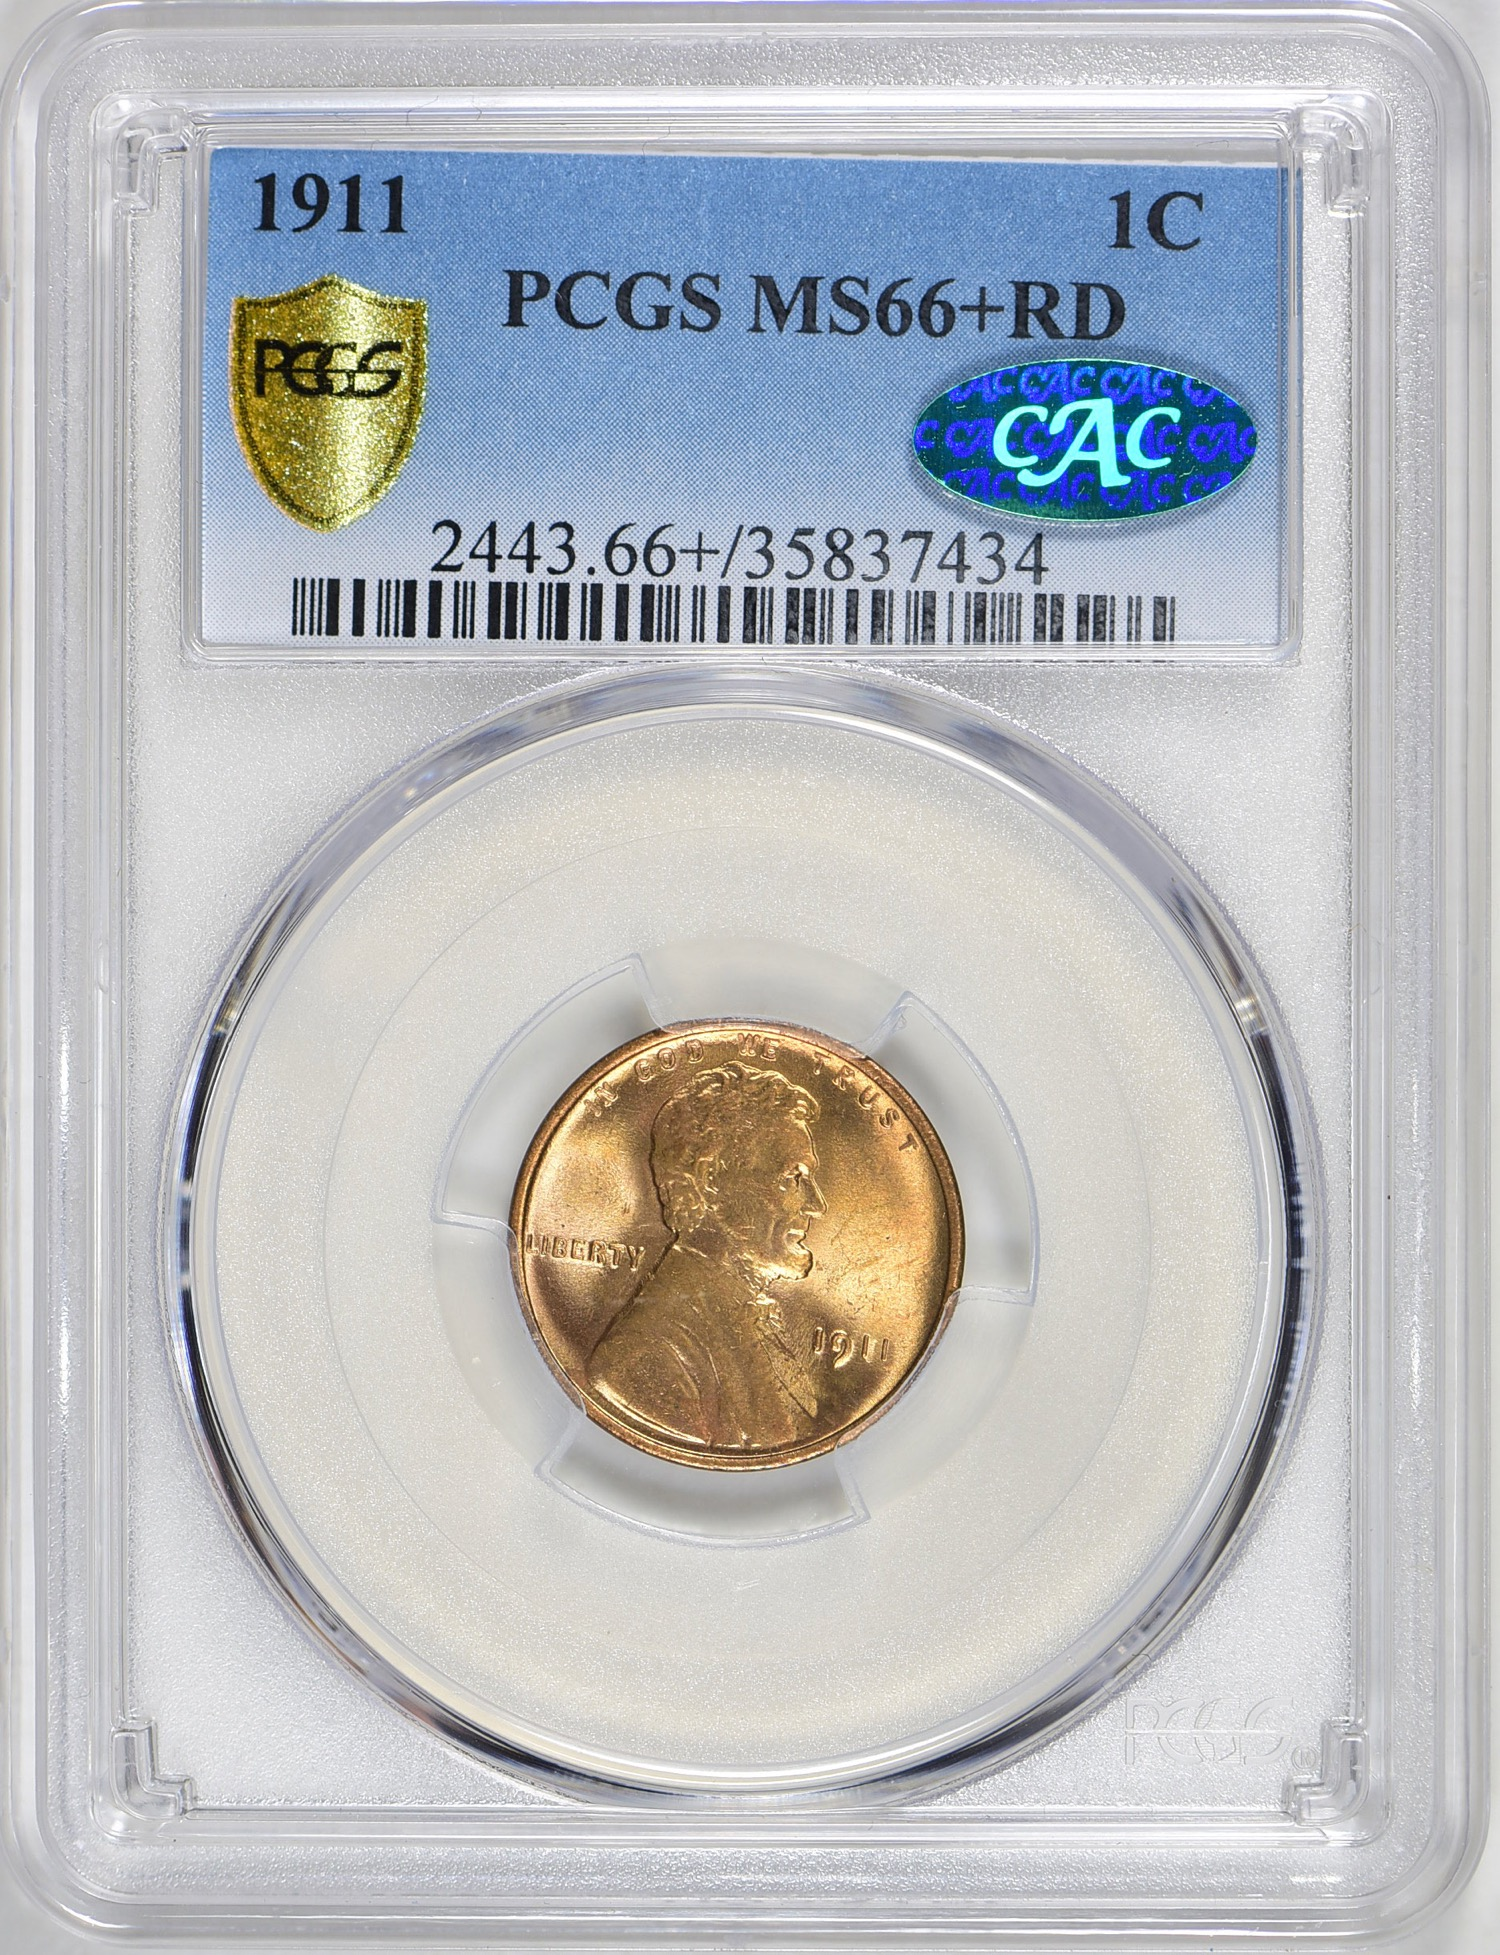 1911 MS66+RD CAC - Acquired GreatCollections 9/30/18. Freely admit to overpaying but this one was a must have. Early Lincolns this nice are hard to come by especially without spots and always seem to go for more than the PCGS price guide. No registry bump though.